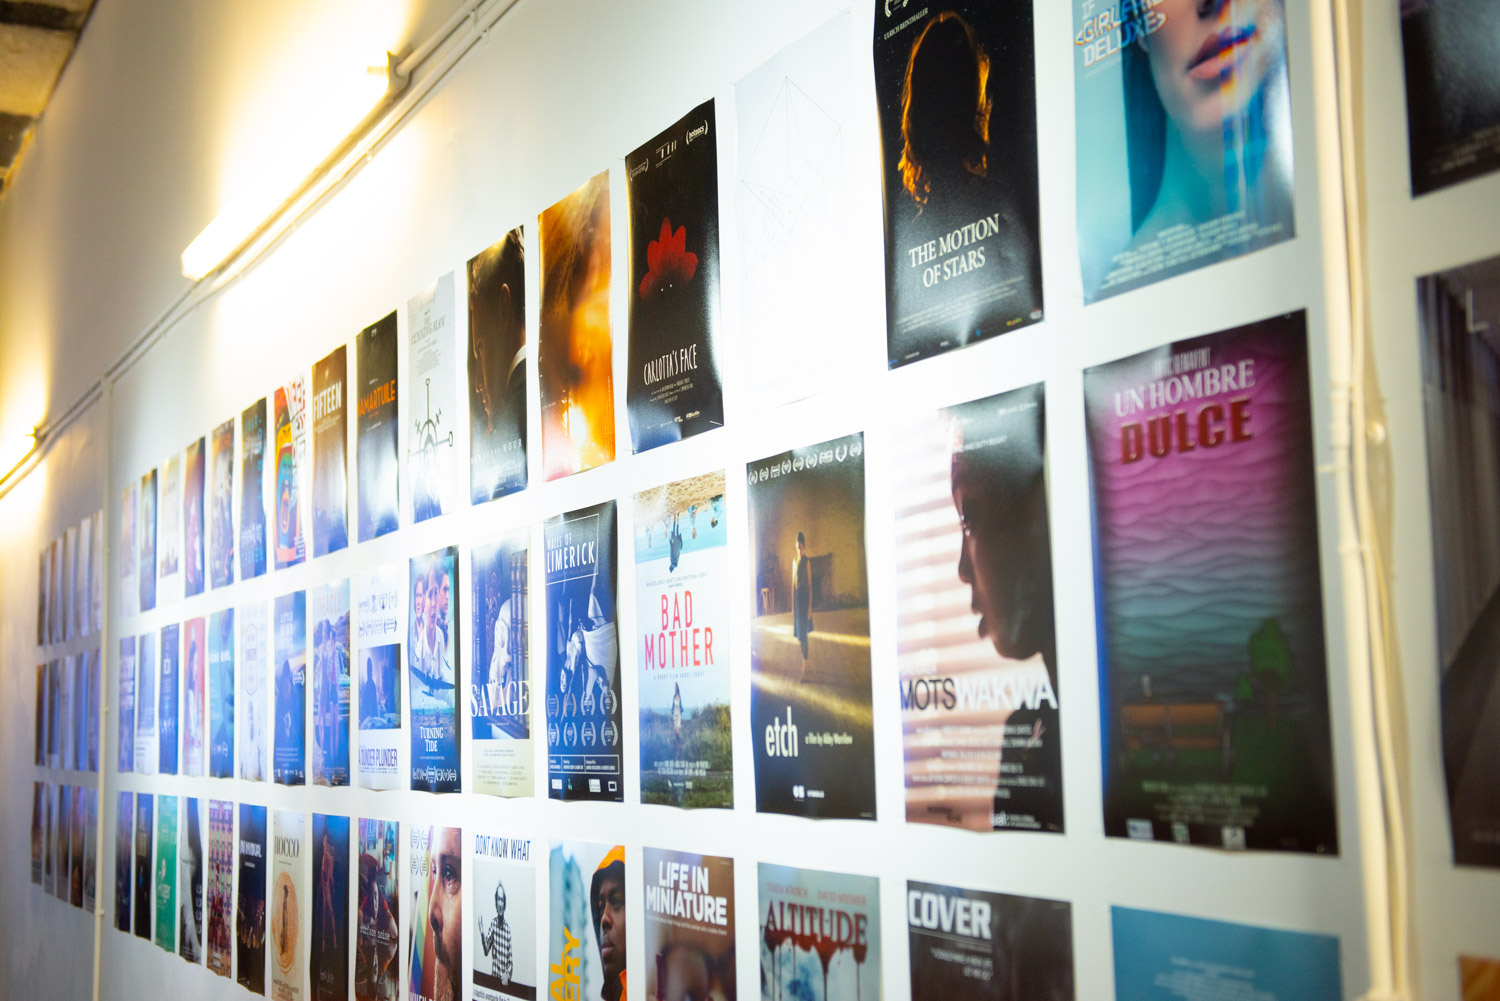 Wall of posters from entries to the Bolton Film Festival 2019